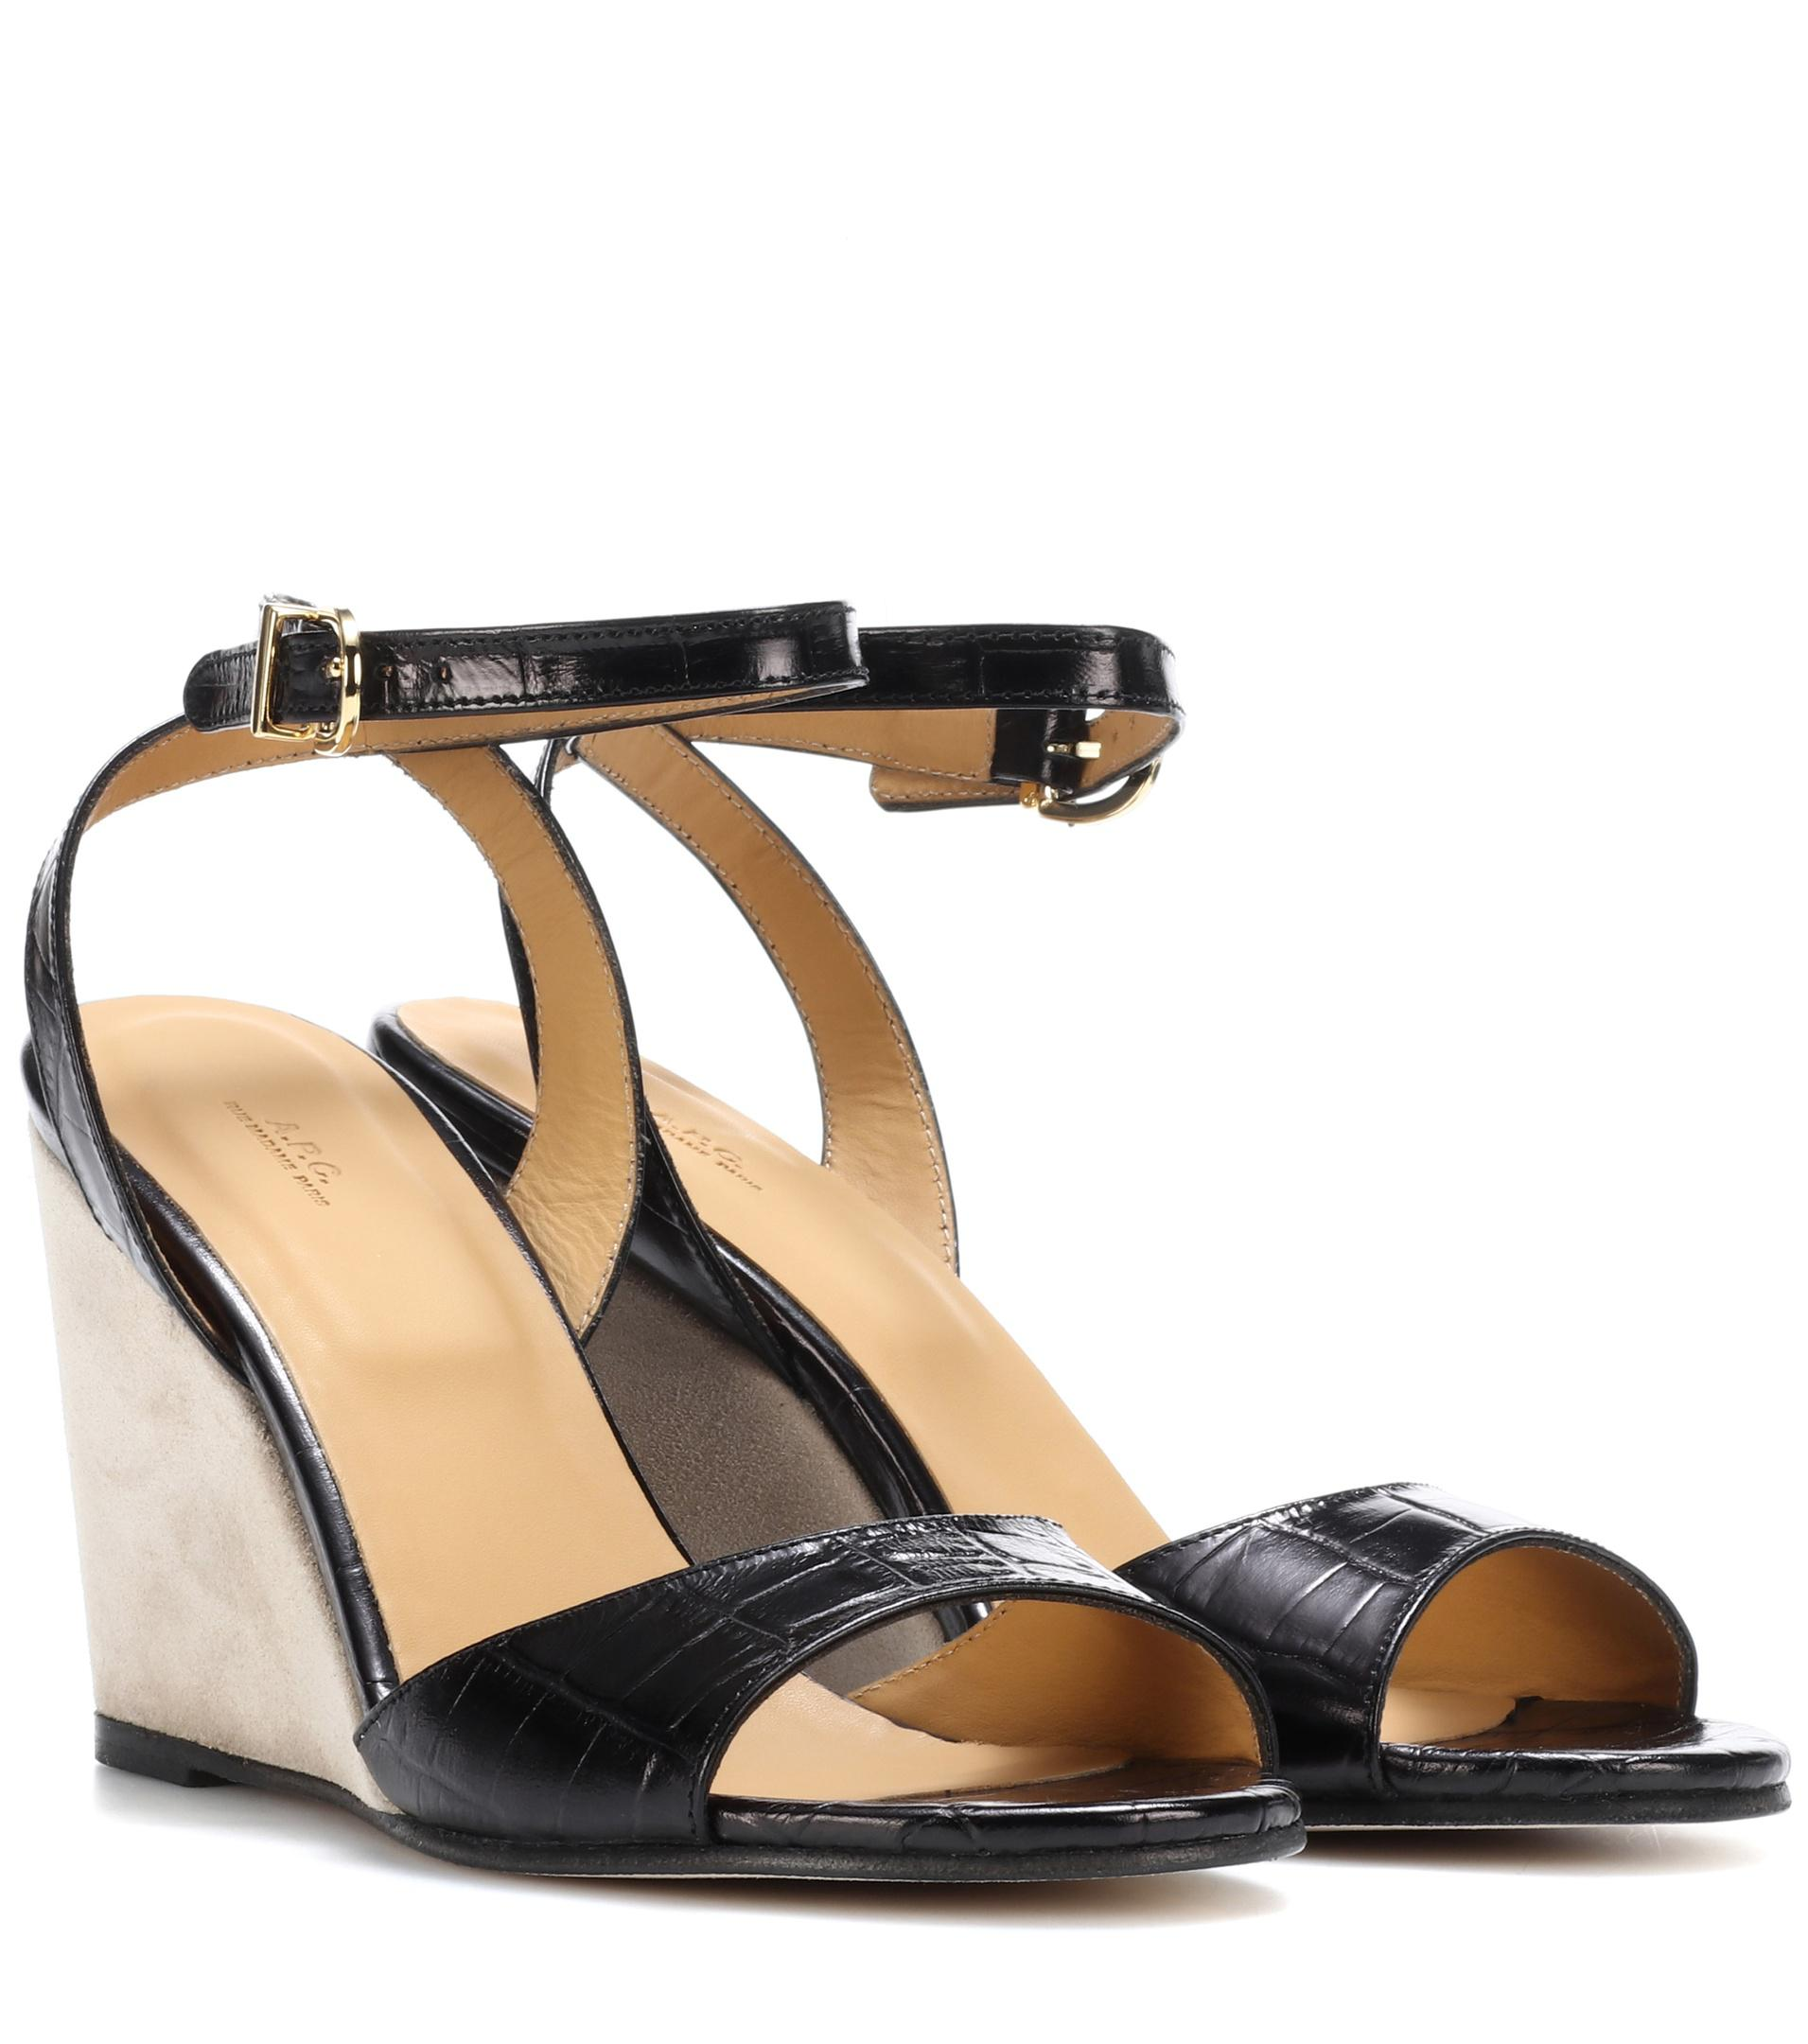 A.P.C. Printed Peep-Toe Wedges discount with paypal outlet best store to get shopping online free shipping with mastercard gRrY1j53